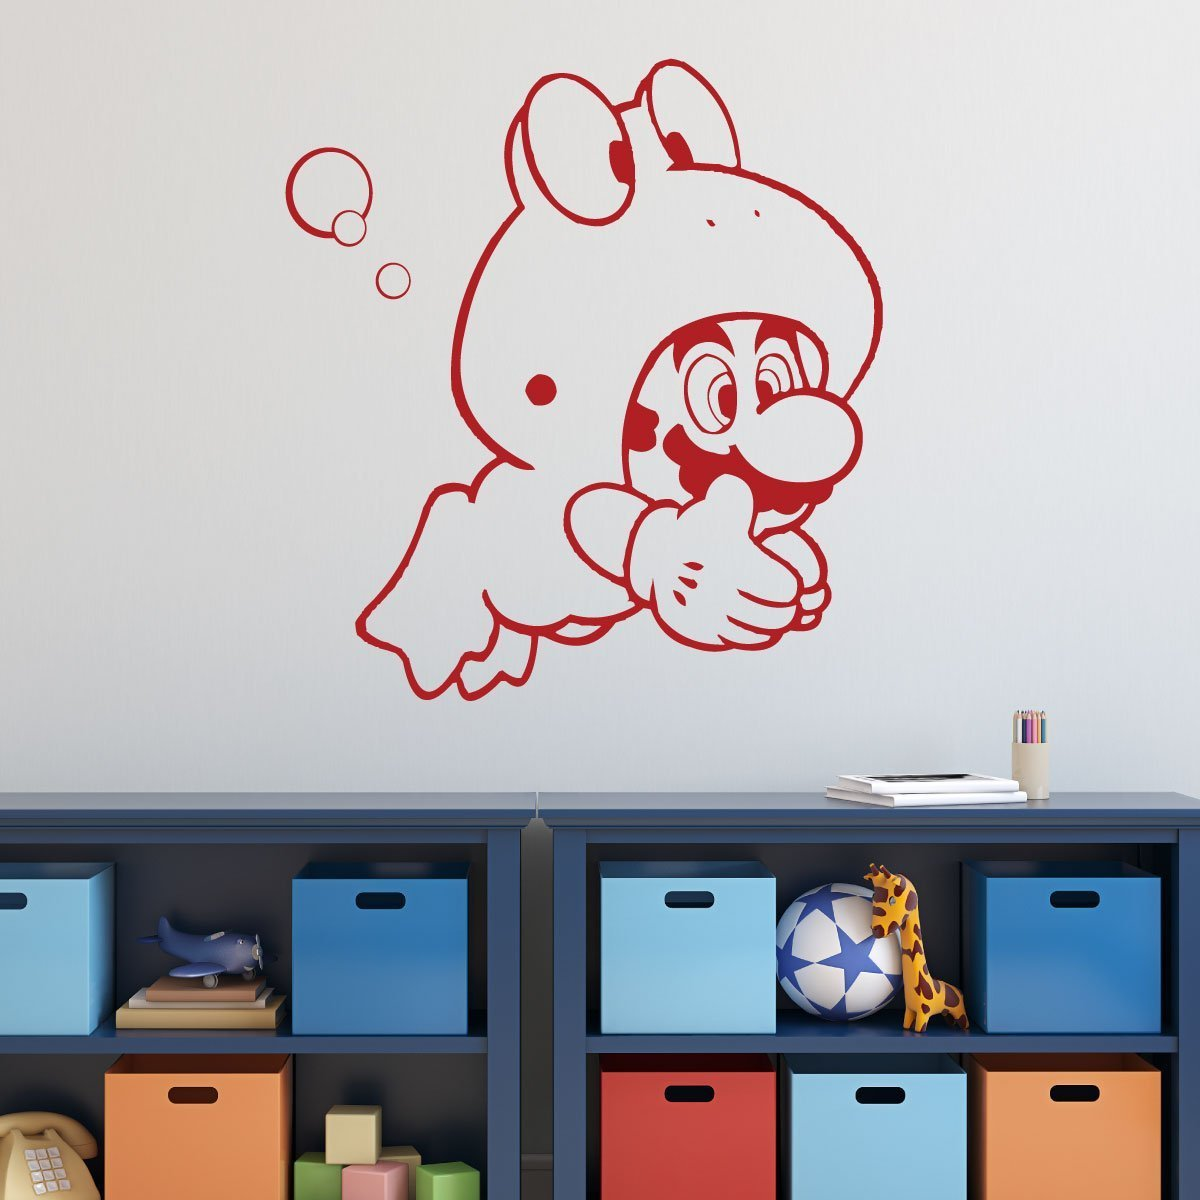 Super Mario Wall Decor   Mario Frog Suit   Vinyl Wall Decal For Boys Room